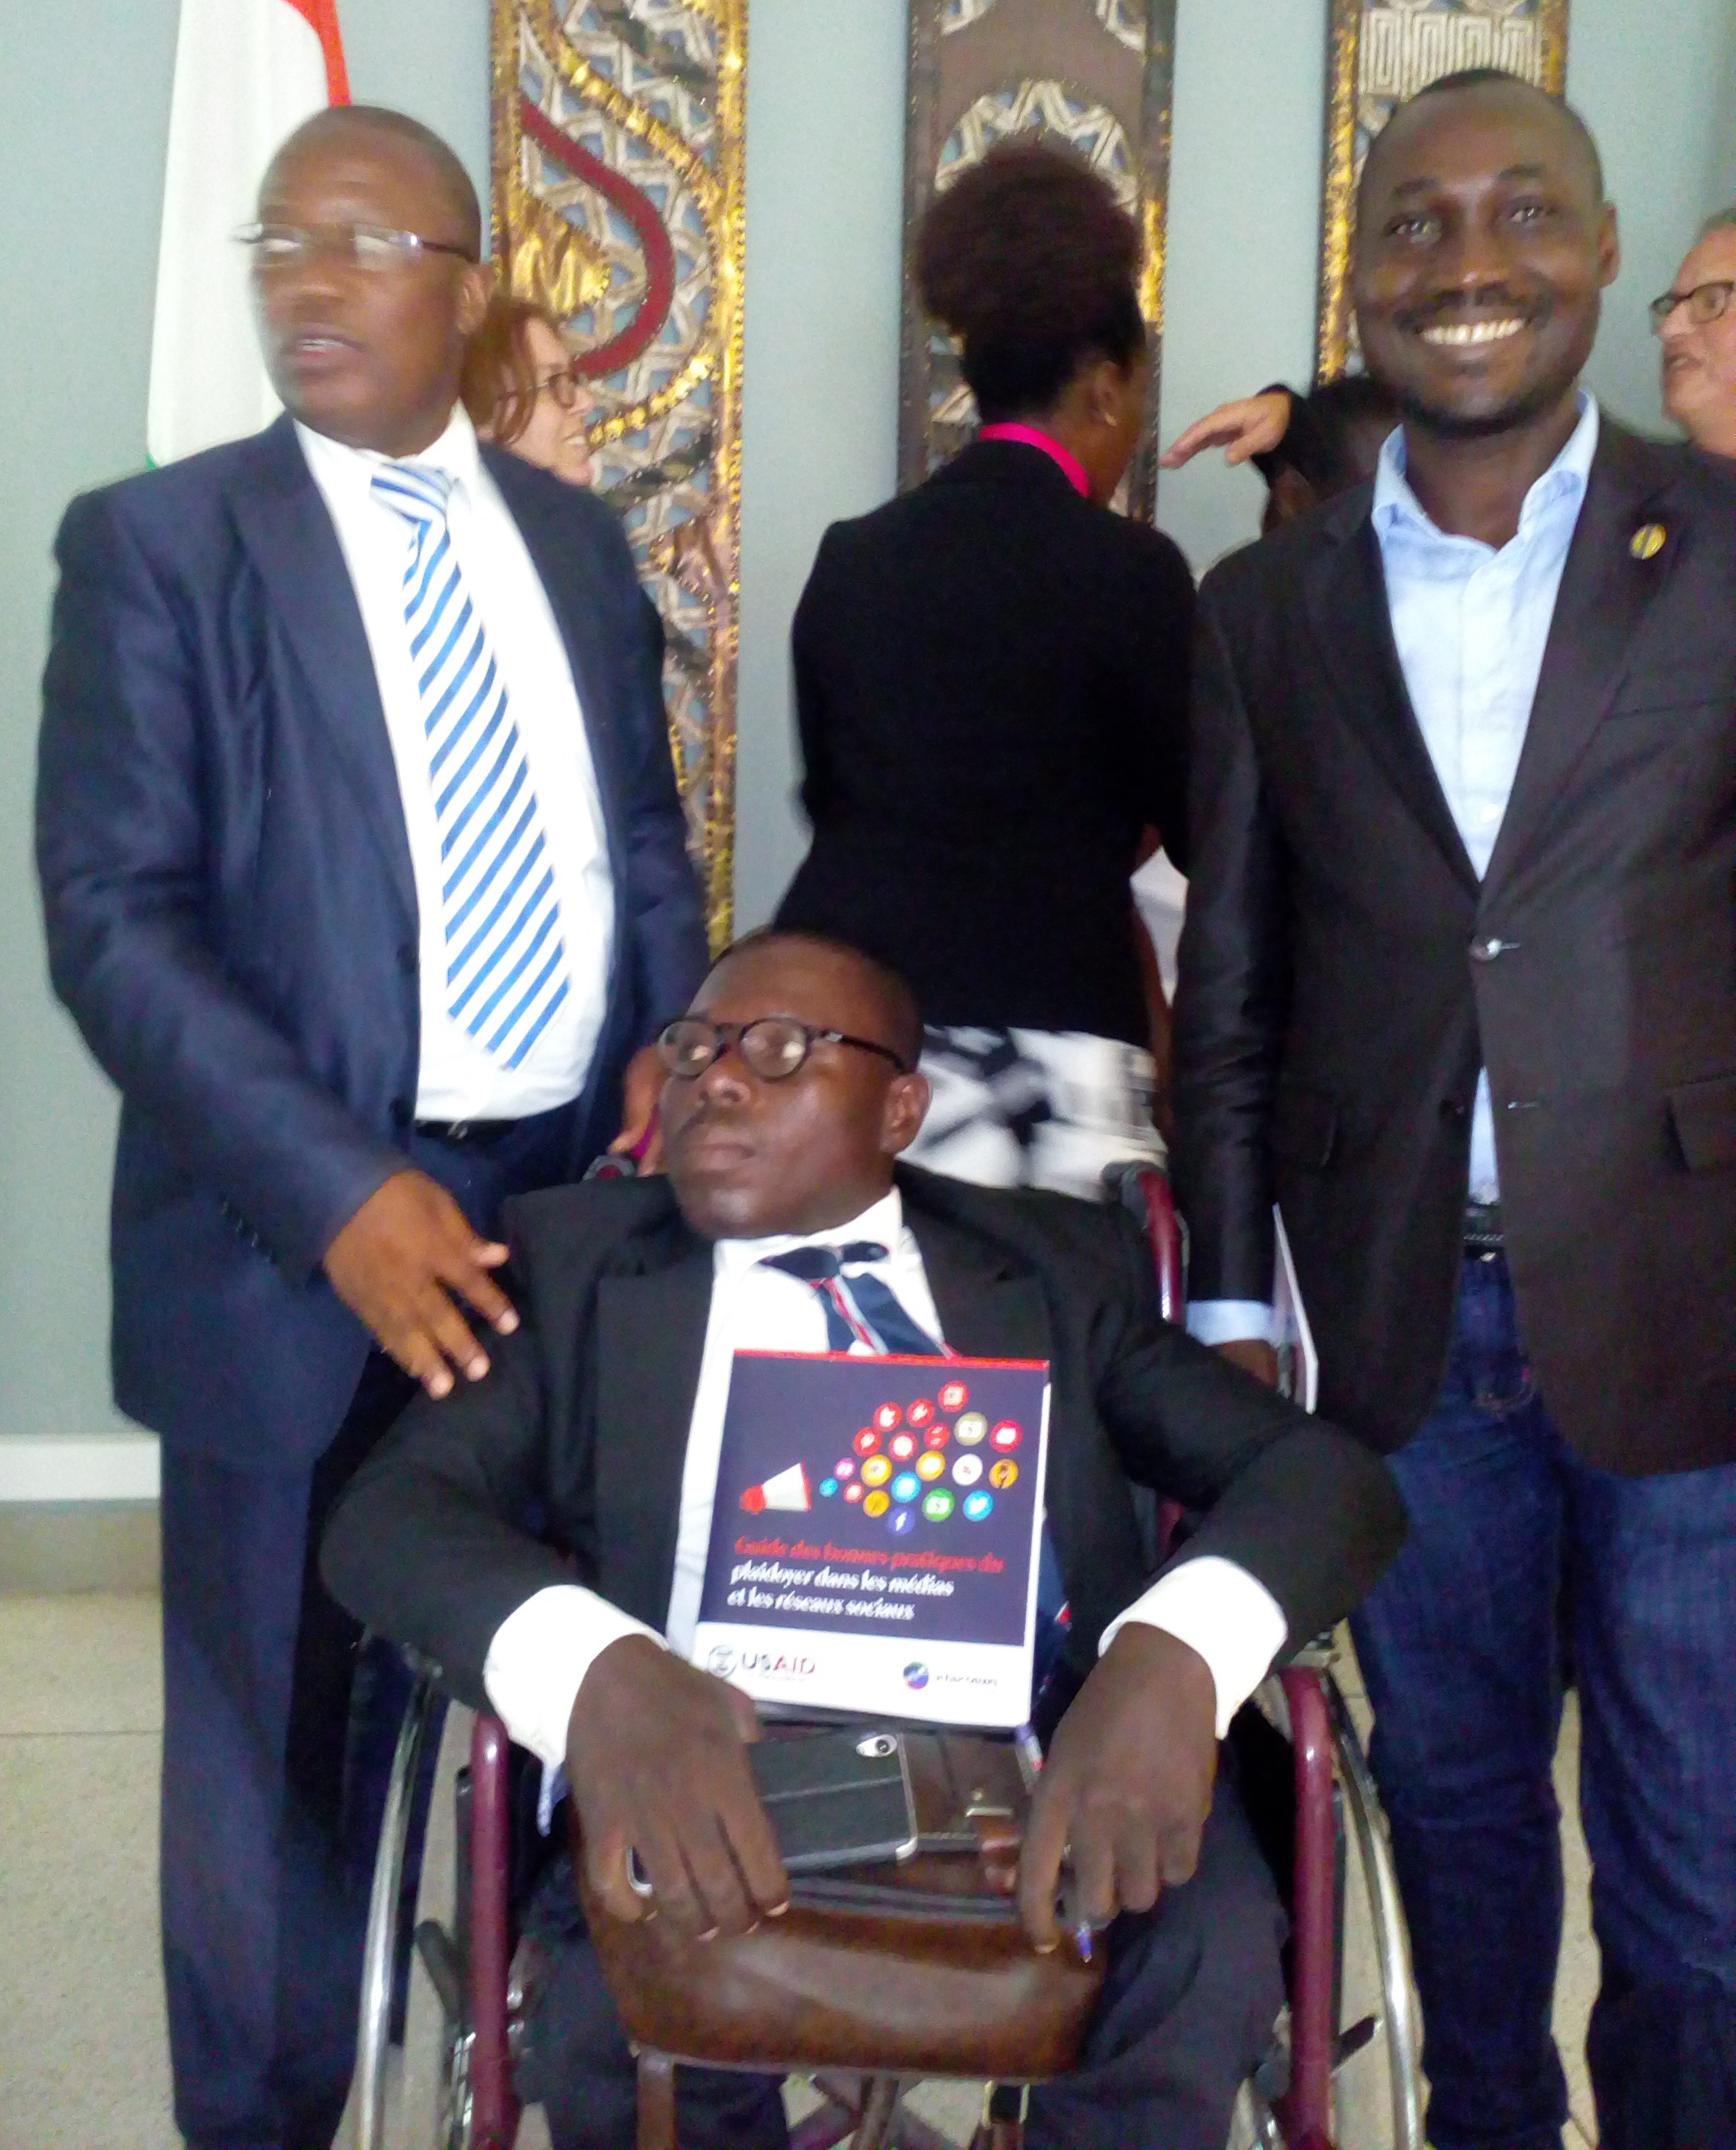 Two men stand next to a man in a wheelchair who is holding a book